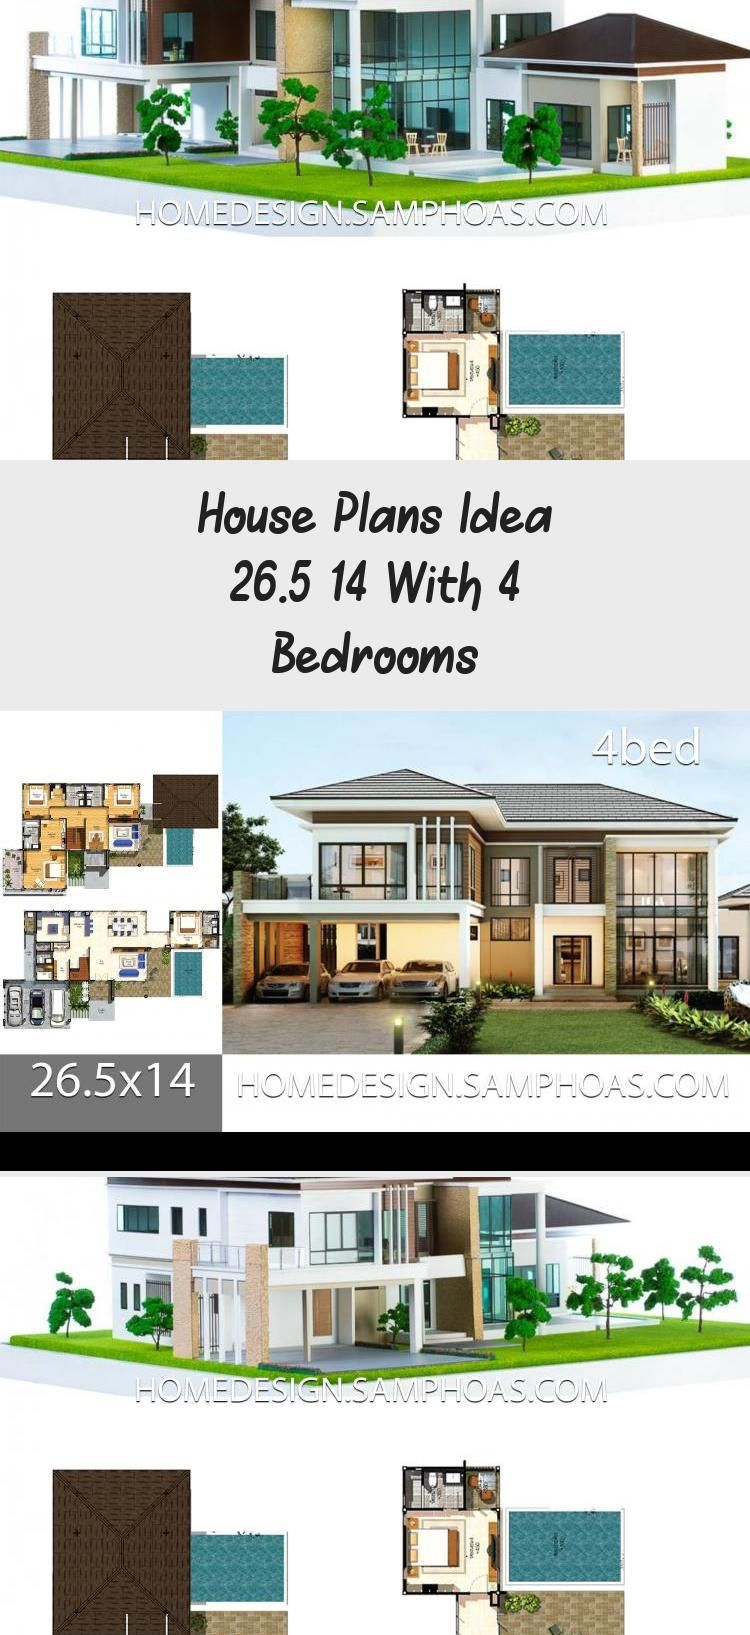 House Plans Idea 26 5 14 With 4 Bedrooms Erin S Blog In 2020 Luxury House Designs House Plans Luxury Houses Mansions